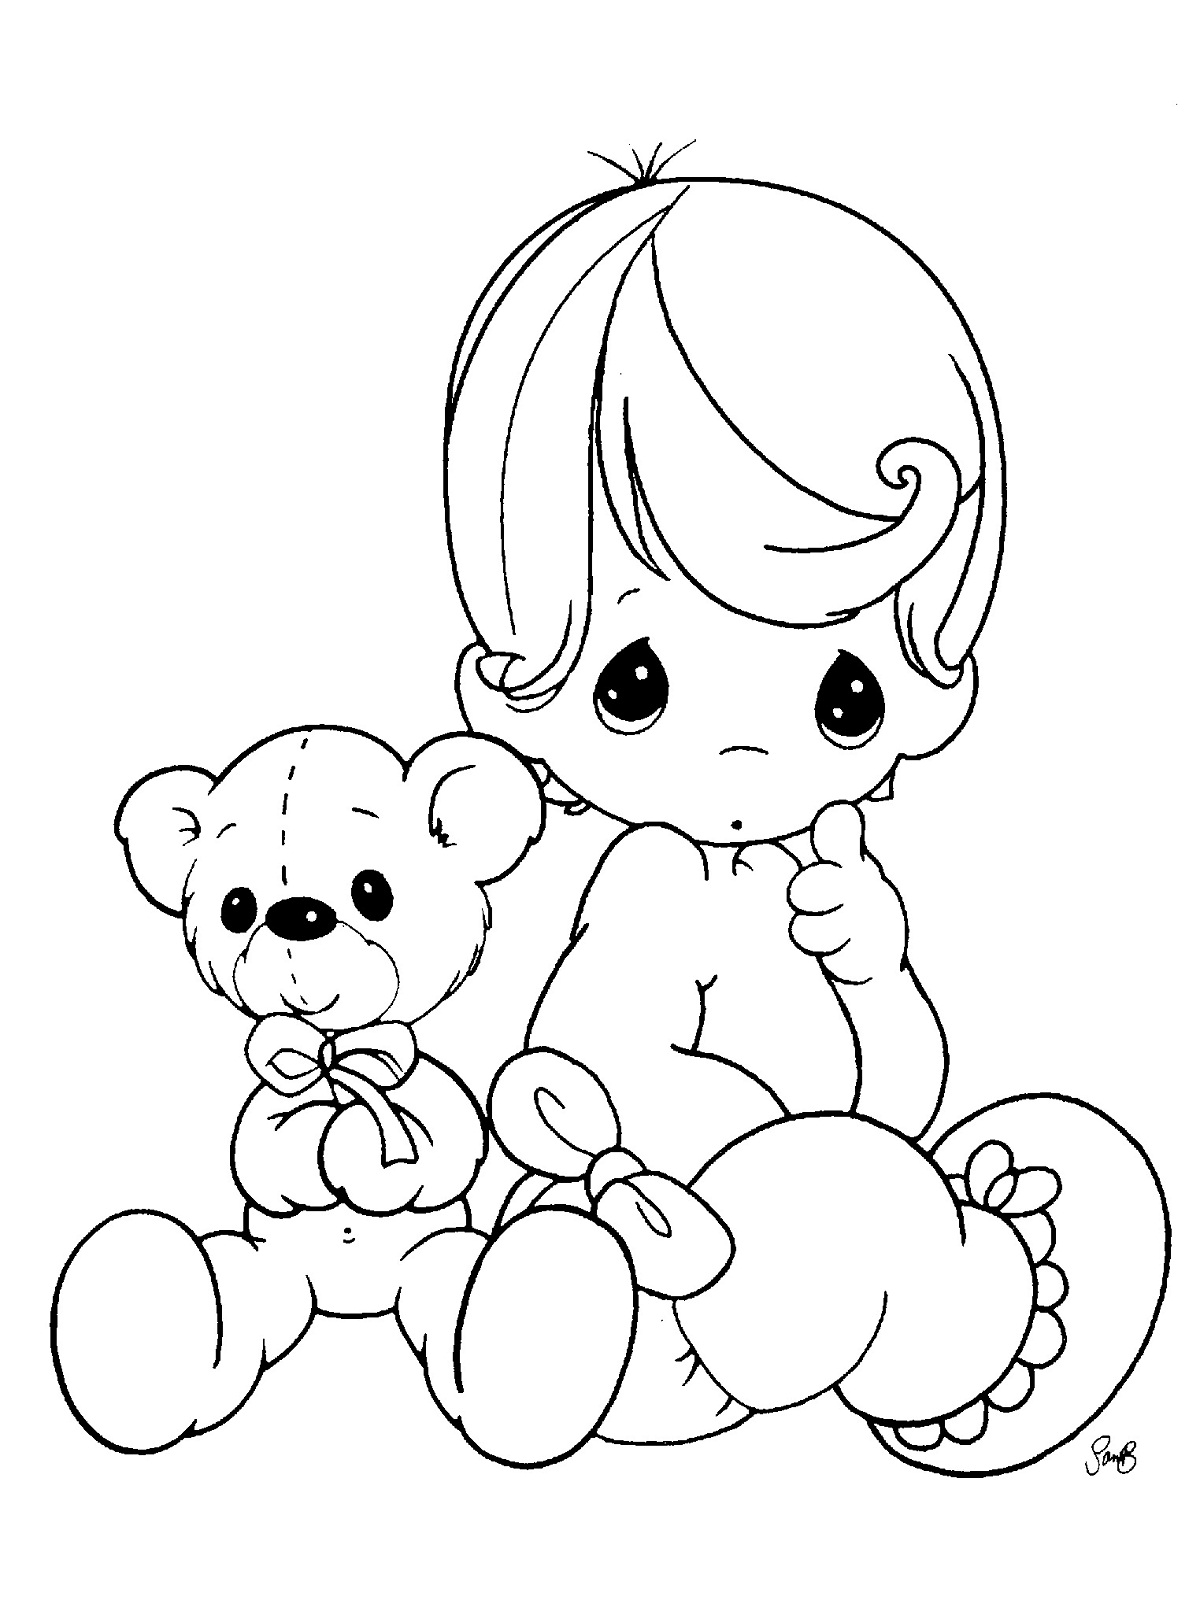 Free Printable Baby Coloring Pages For Kids | colouring pages for toddlers